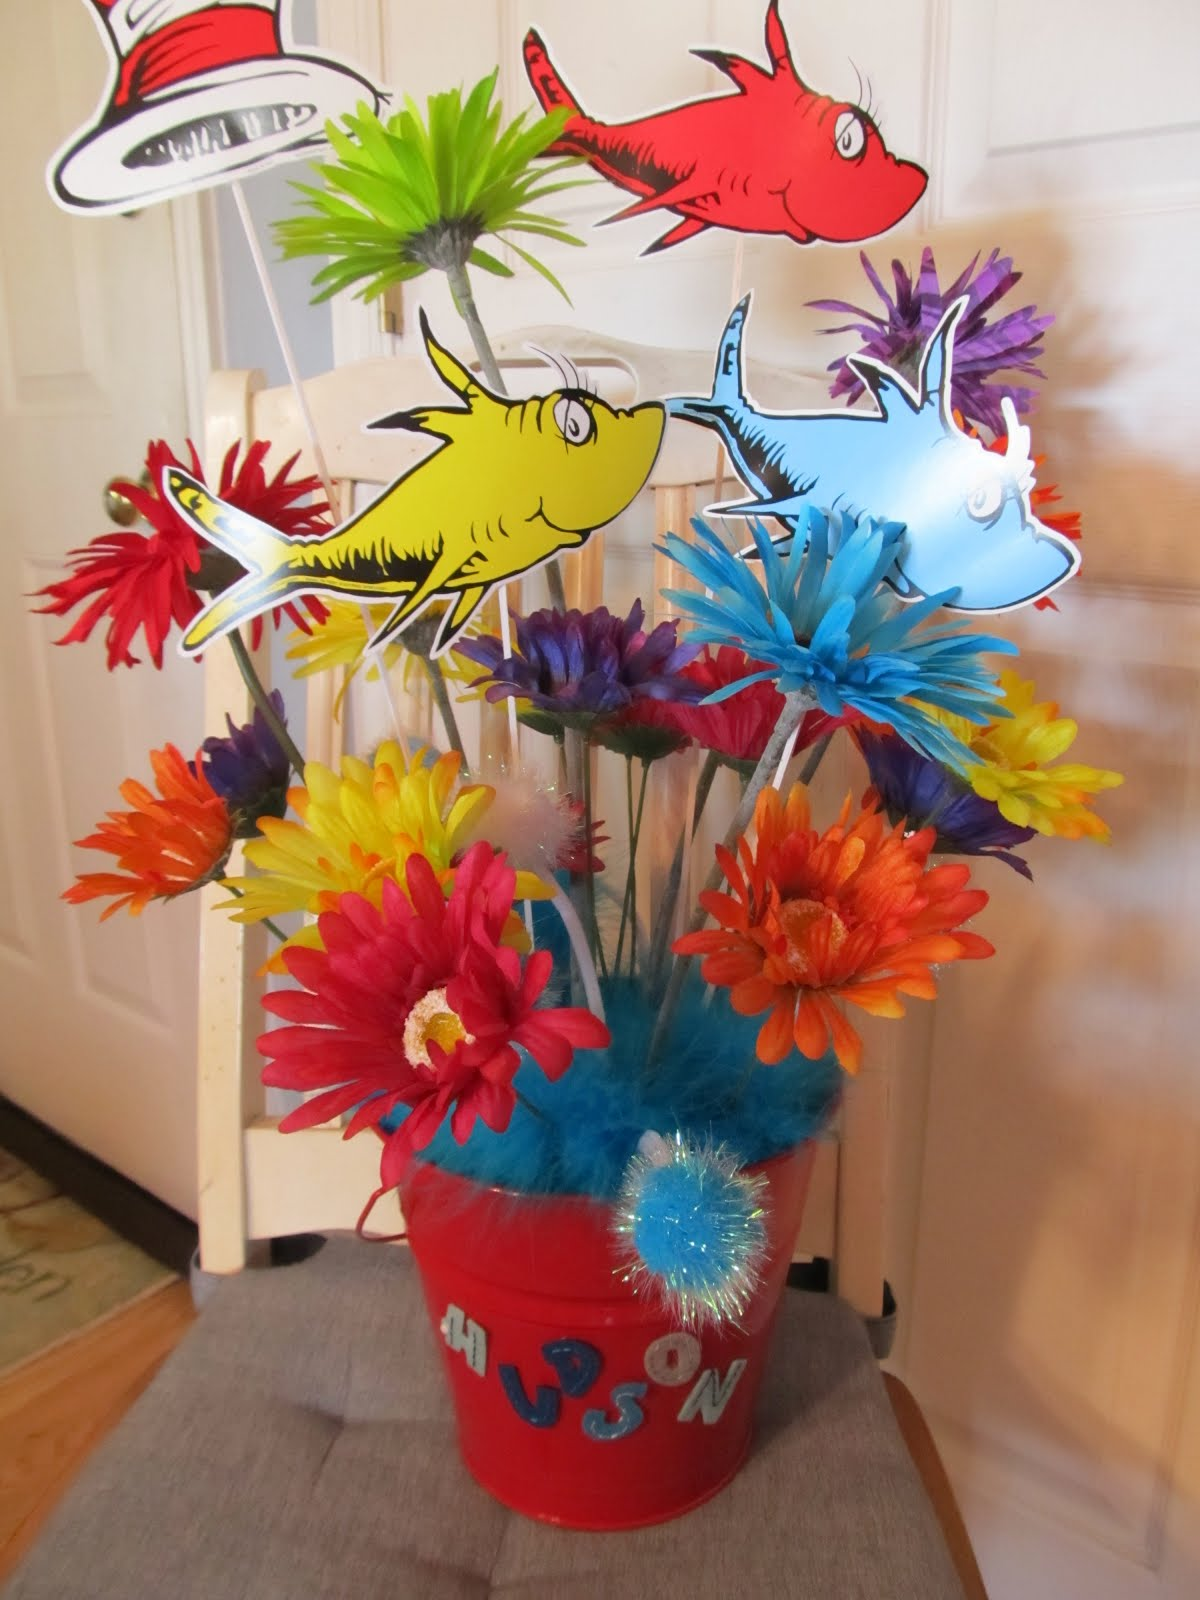 Stamping-Cooking-Knitting-My Life!: Dr. Seuss Centerpiece